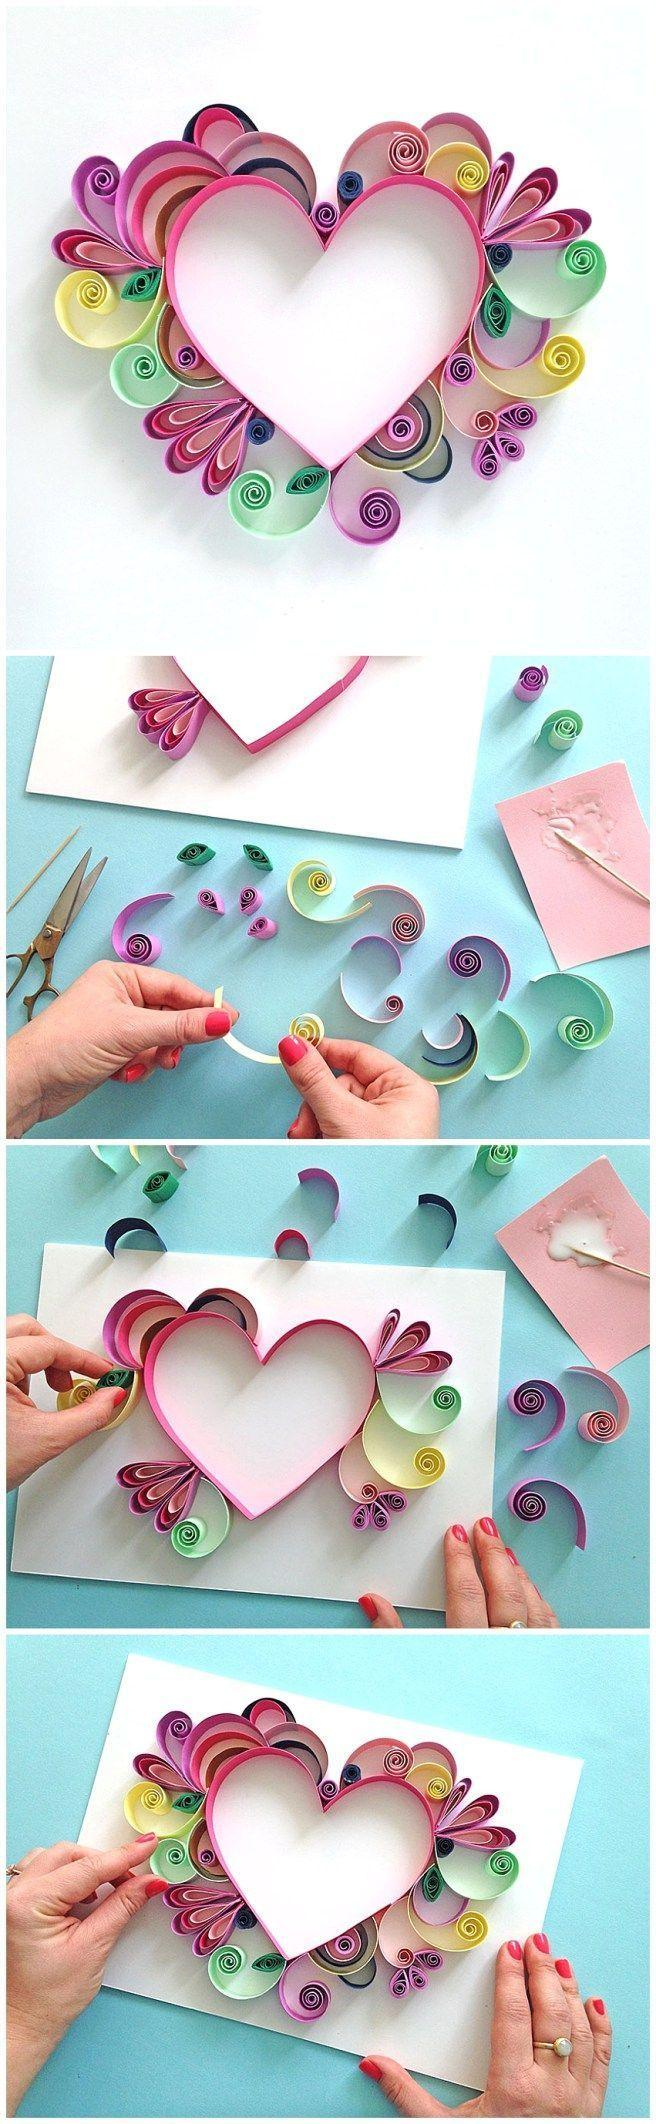 How to make handmade pictures: templates, photos and step-by-step 62